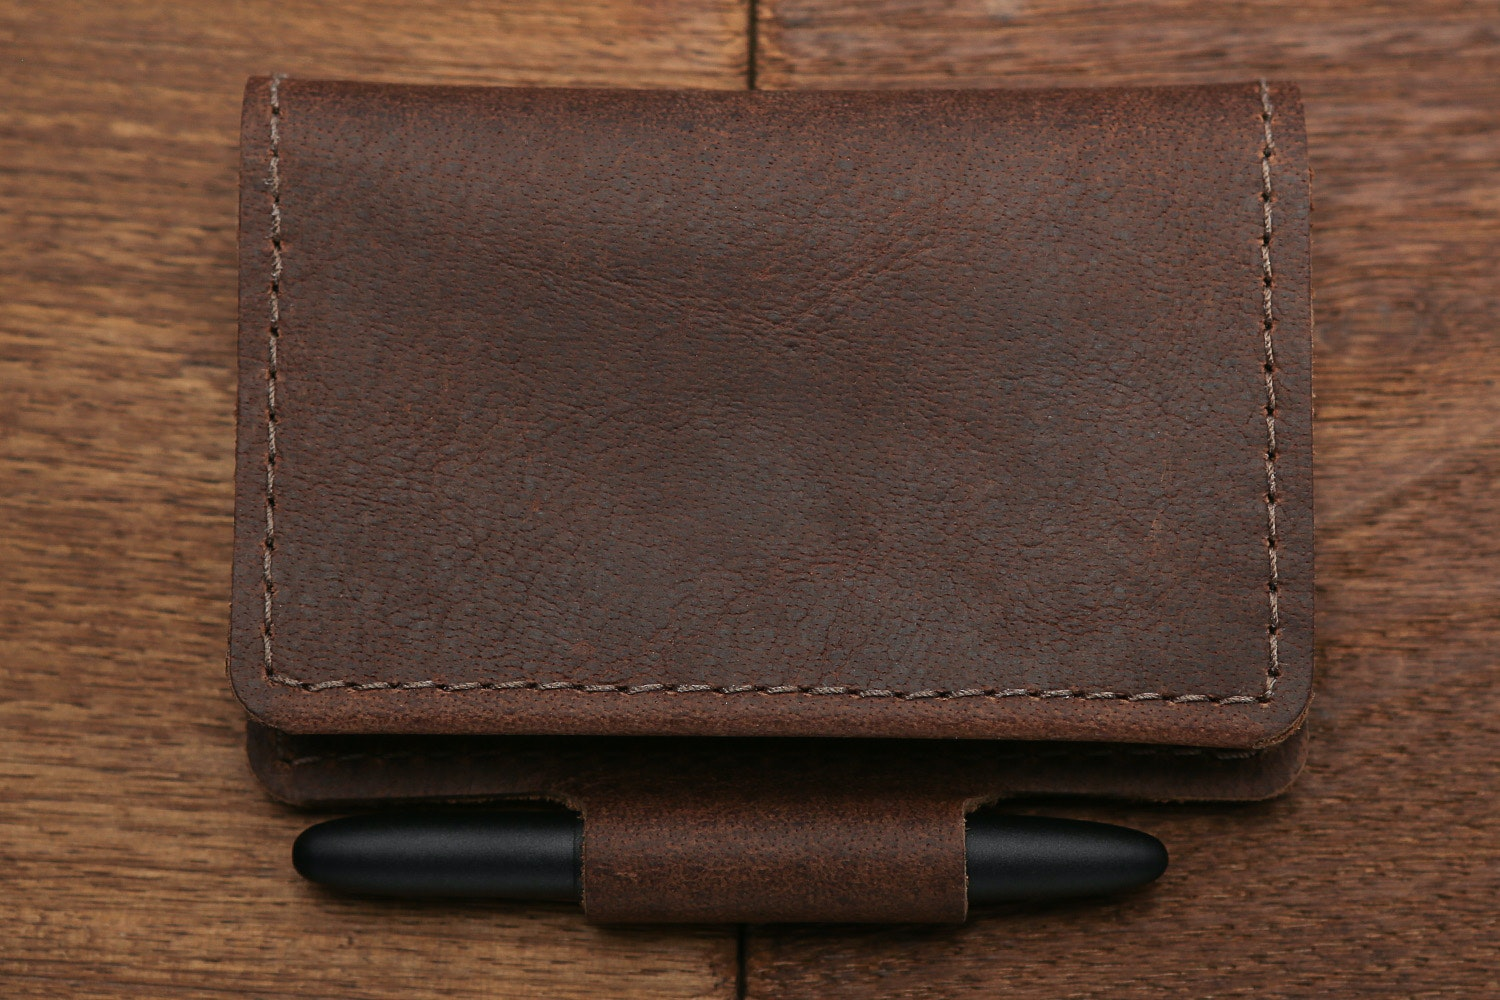 Rustico Orbiter Leather Wallet